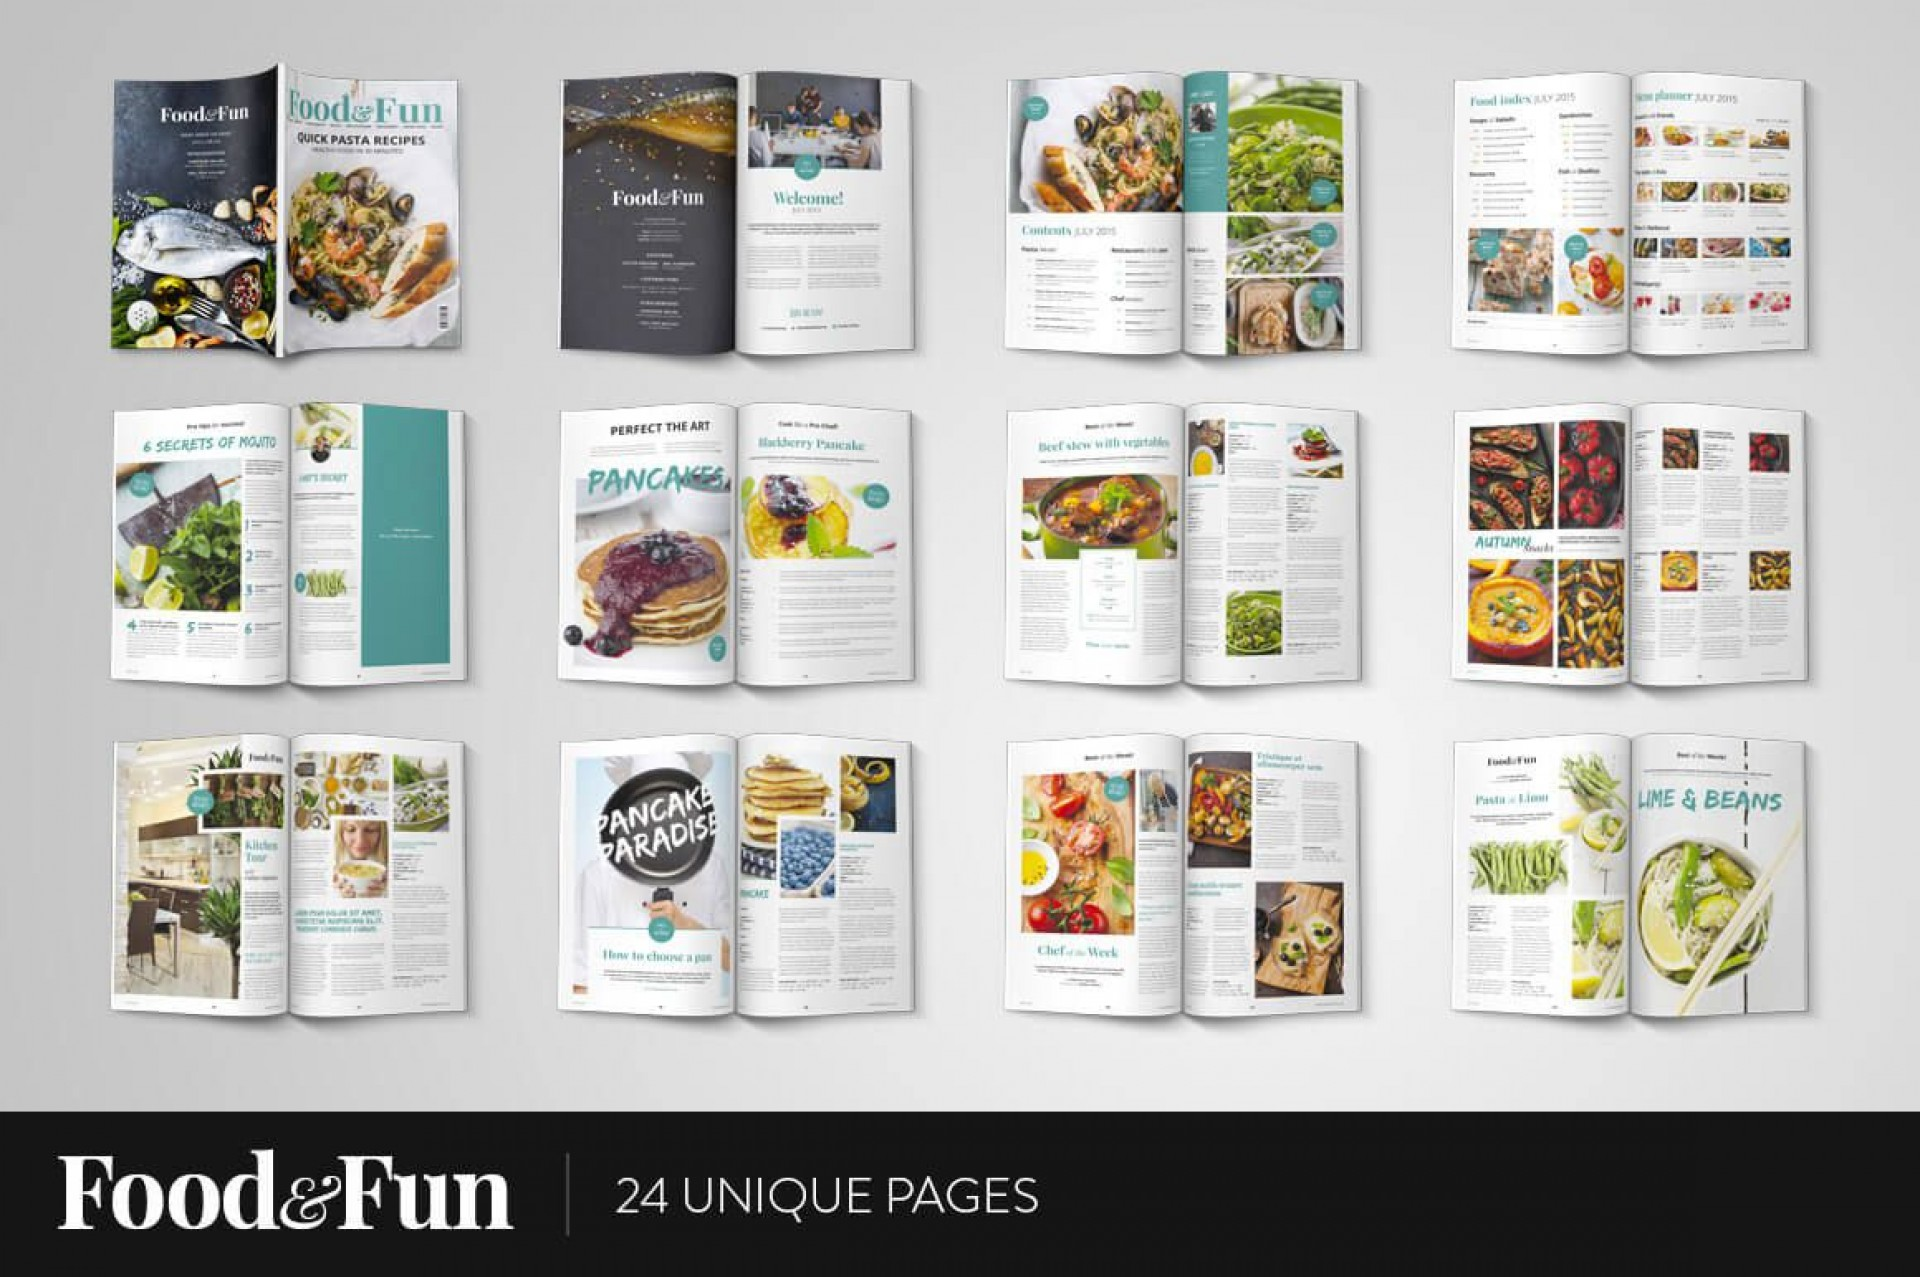 004 Surprising Magazine Layout Template Free Download Word High Def 1920